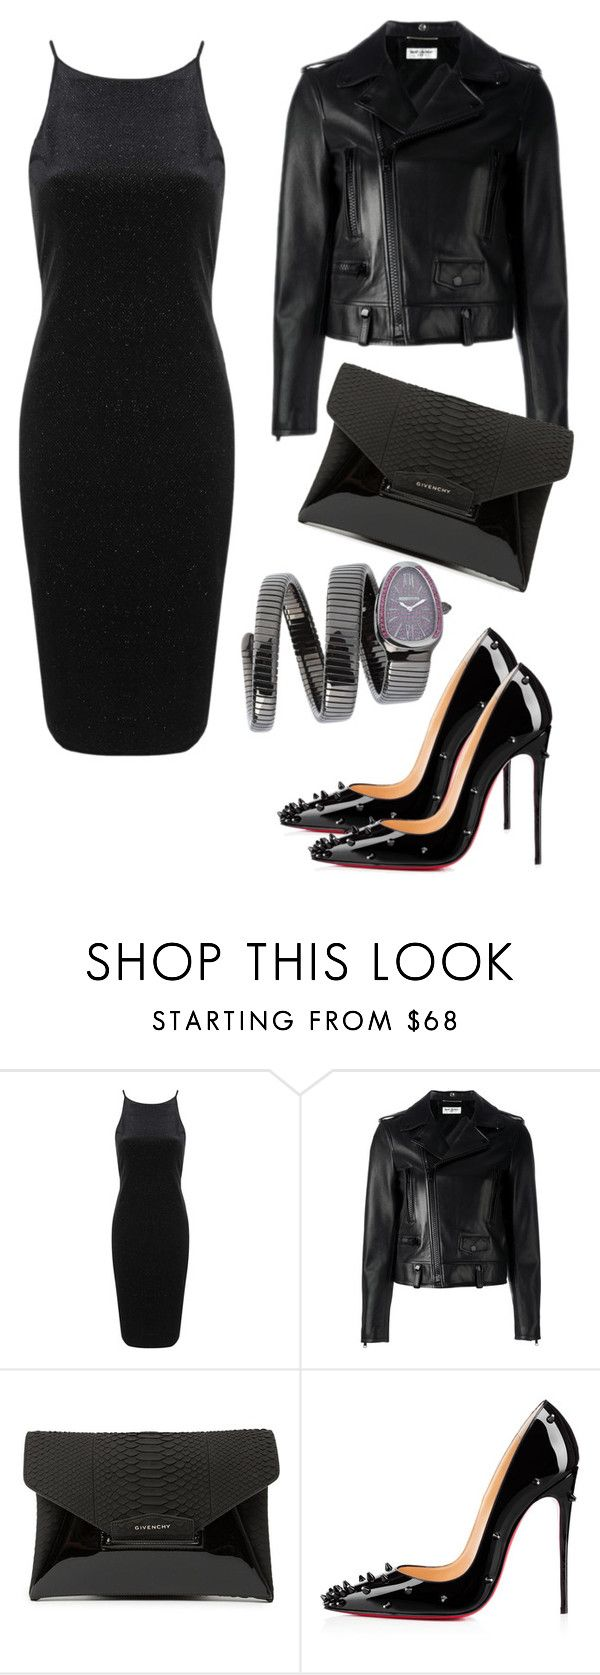 Outfit #143 by sofi6277 ❤ liked on Polyvore featuring Topshop, Yves Saint Laurent, Givenchy, Christian Louboutin, MAD, women's clothing, women's fashion, women, female and woman